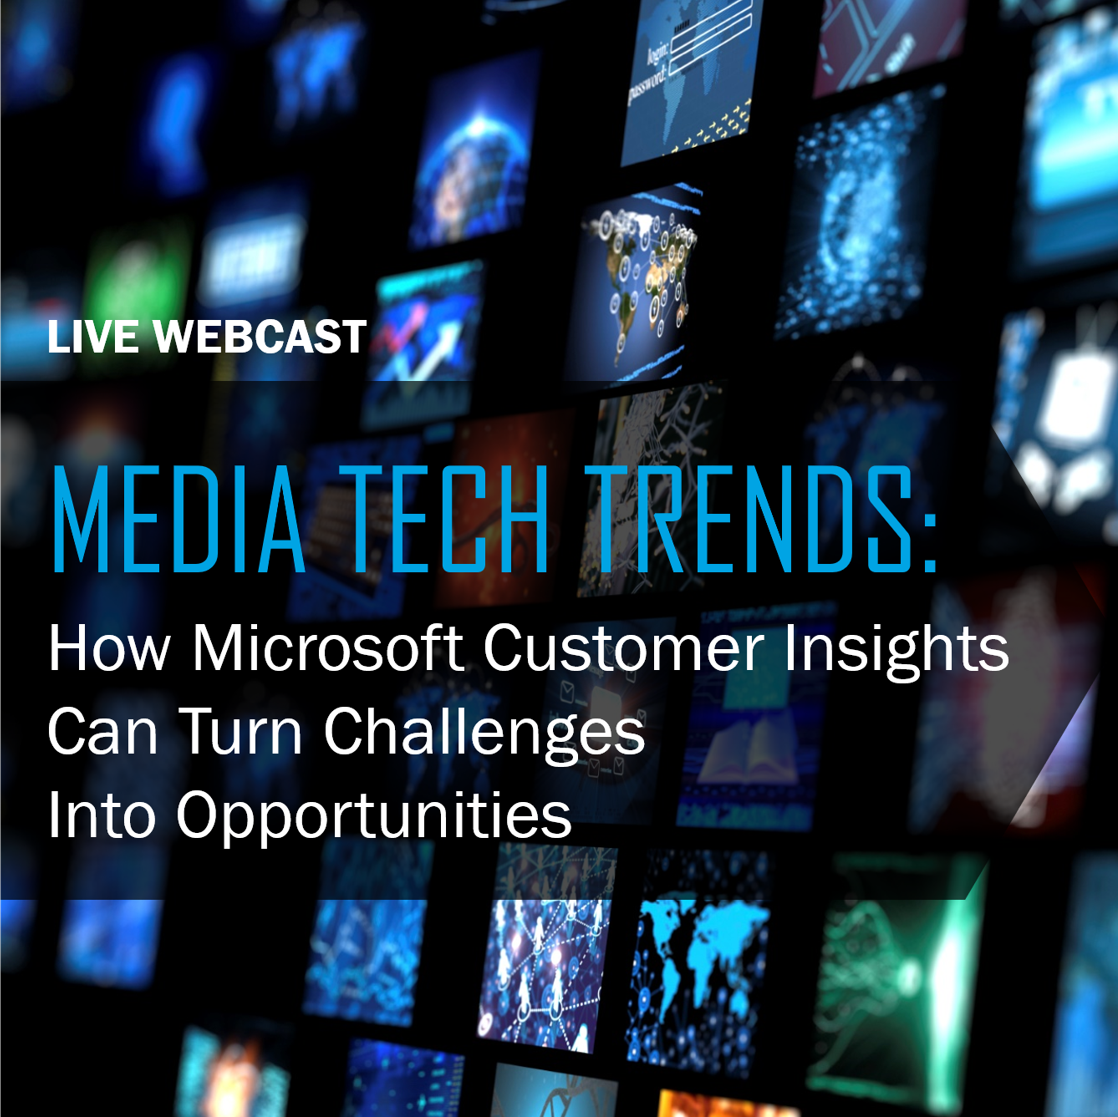 Media Tech Trends Webcast